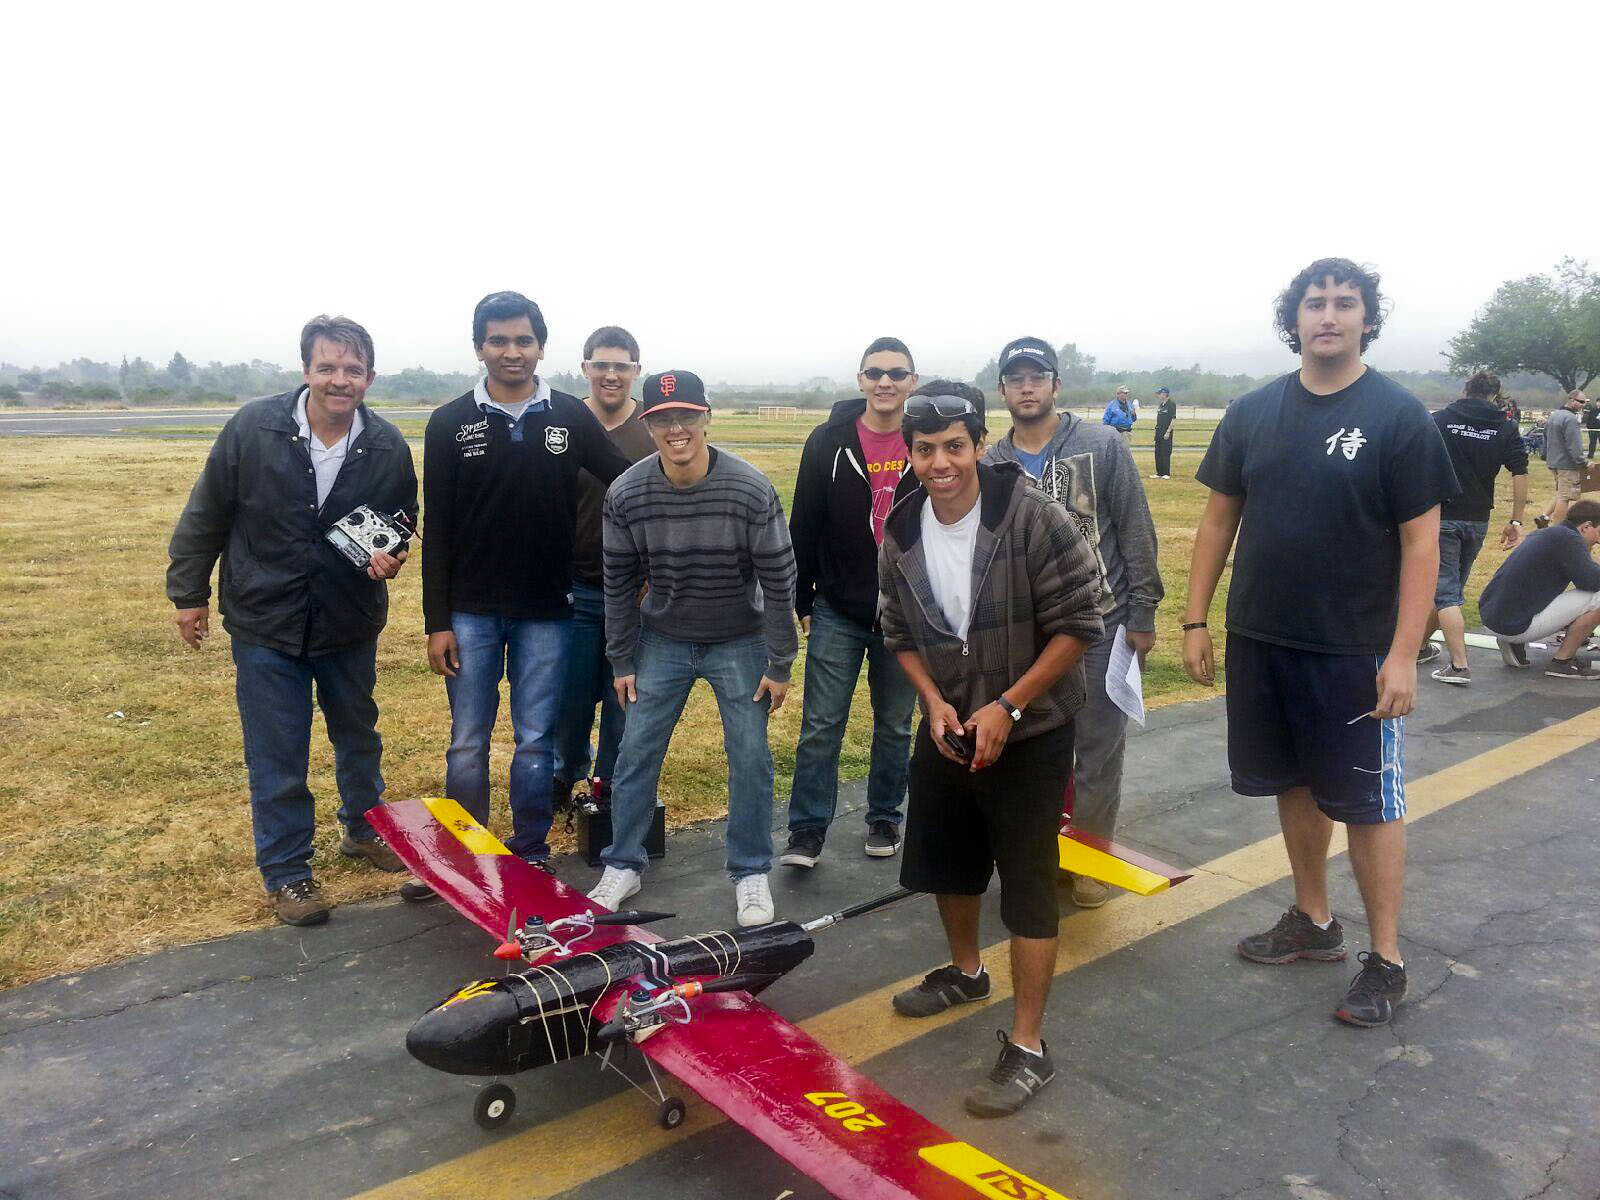 Hard work pays off in unexpected ways for the SAE@ASU Aero team